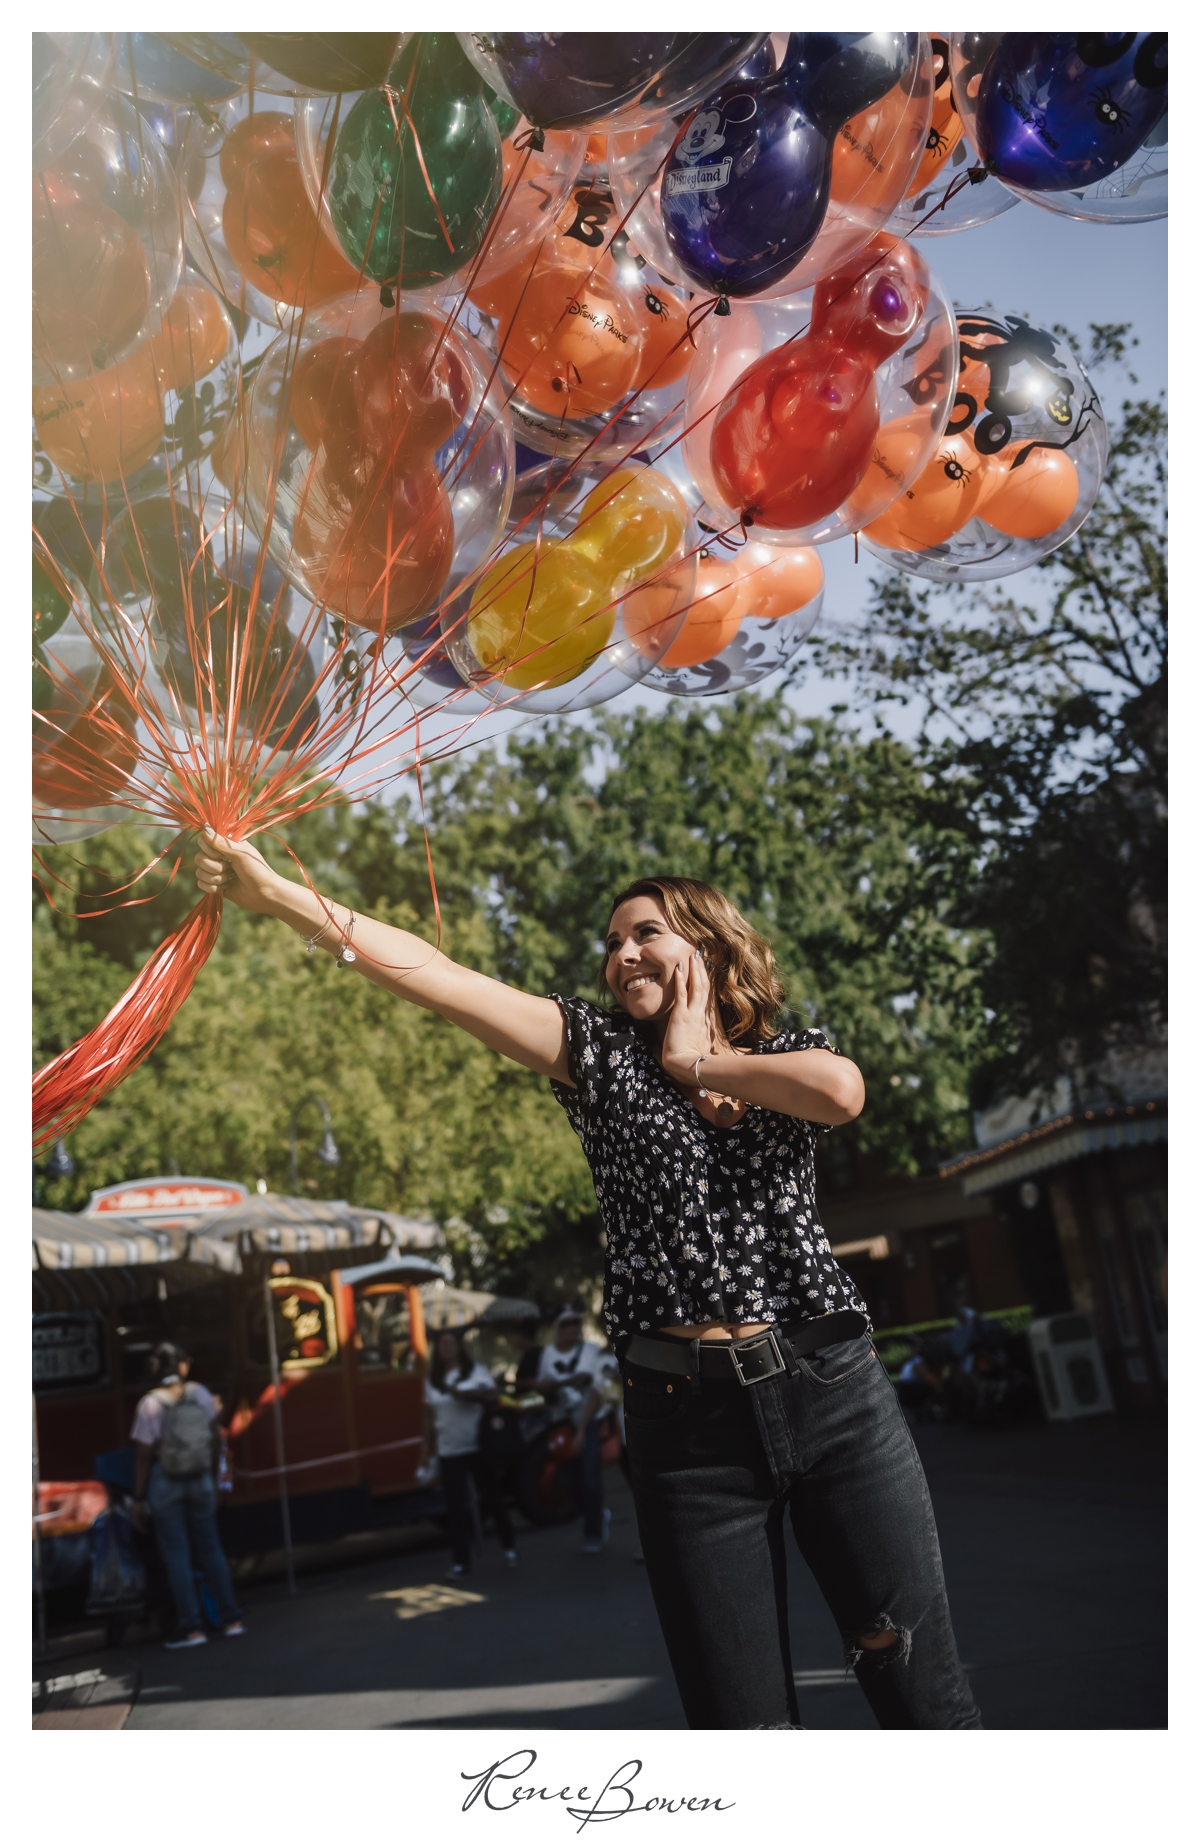 gen z podcast girl with balloons